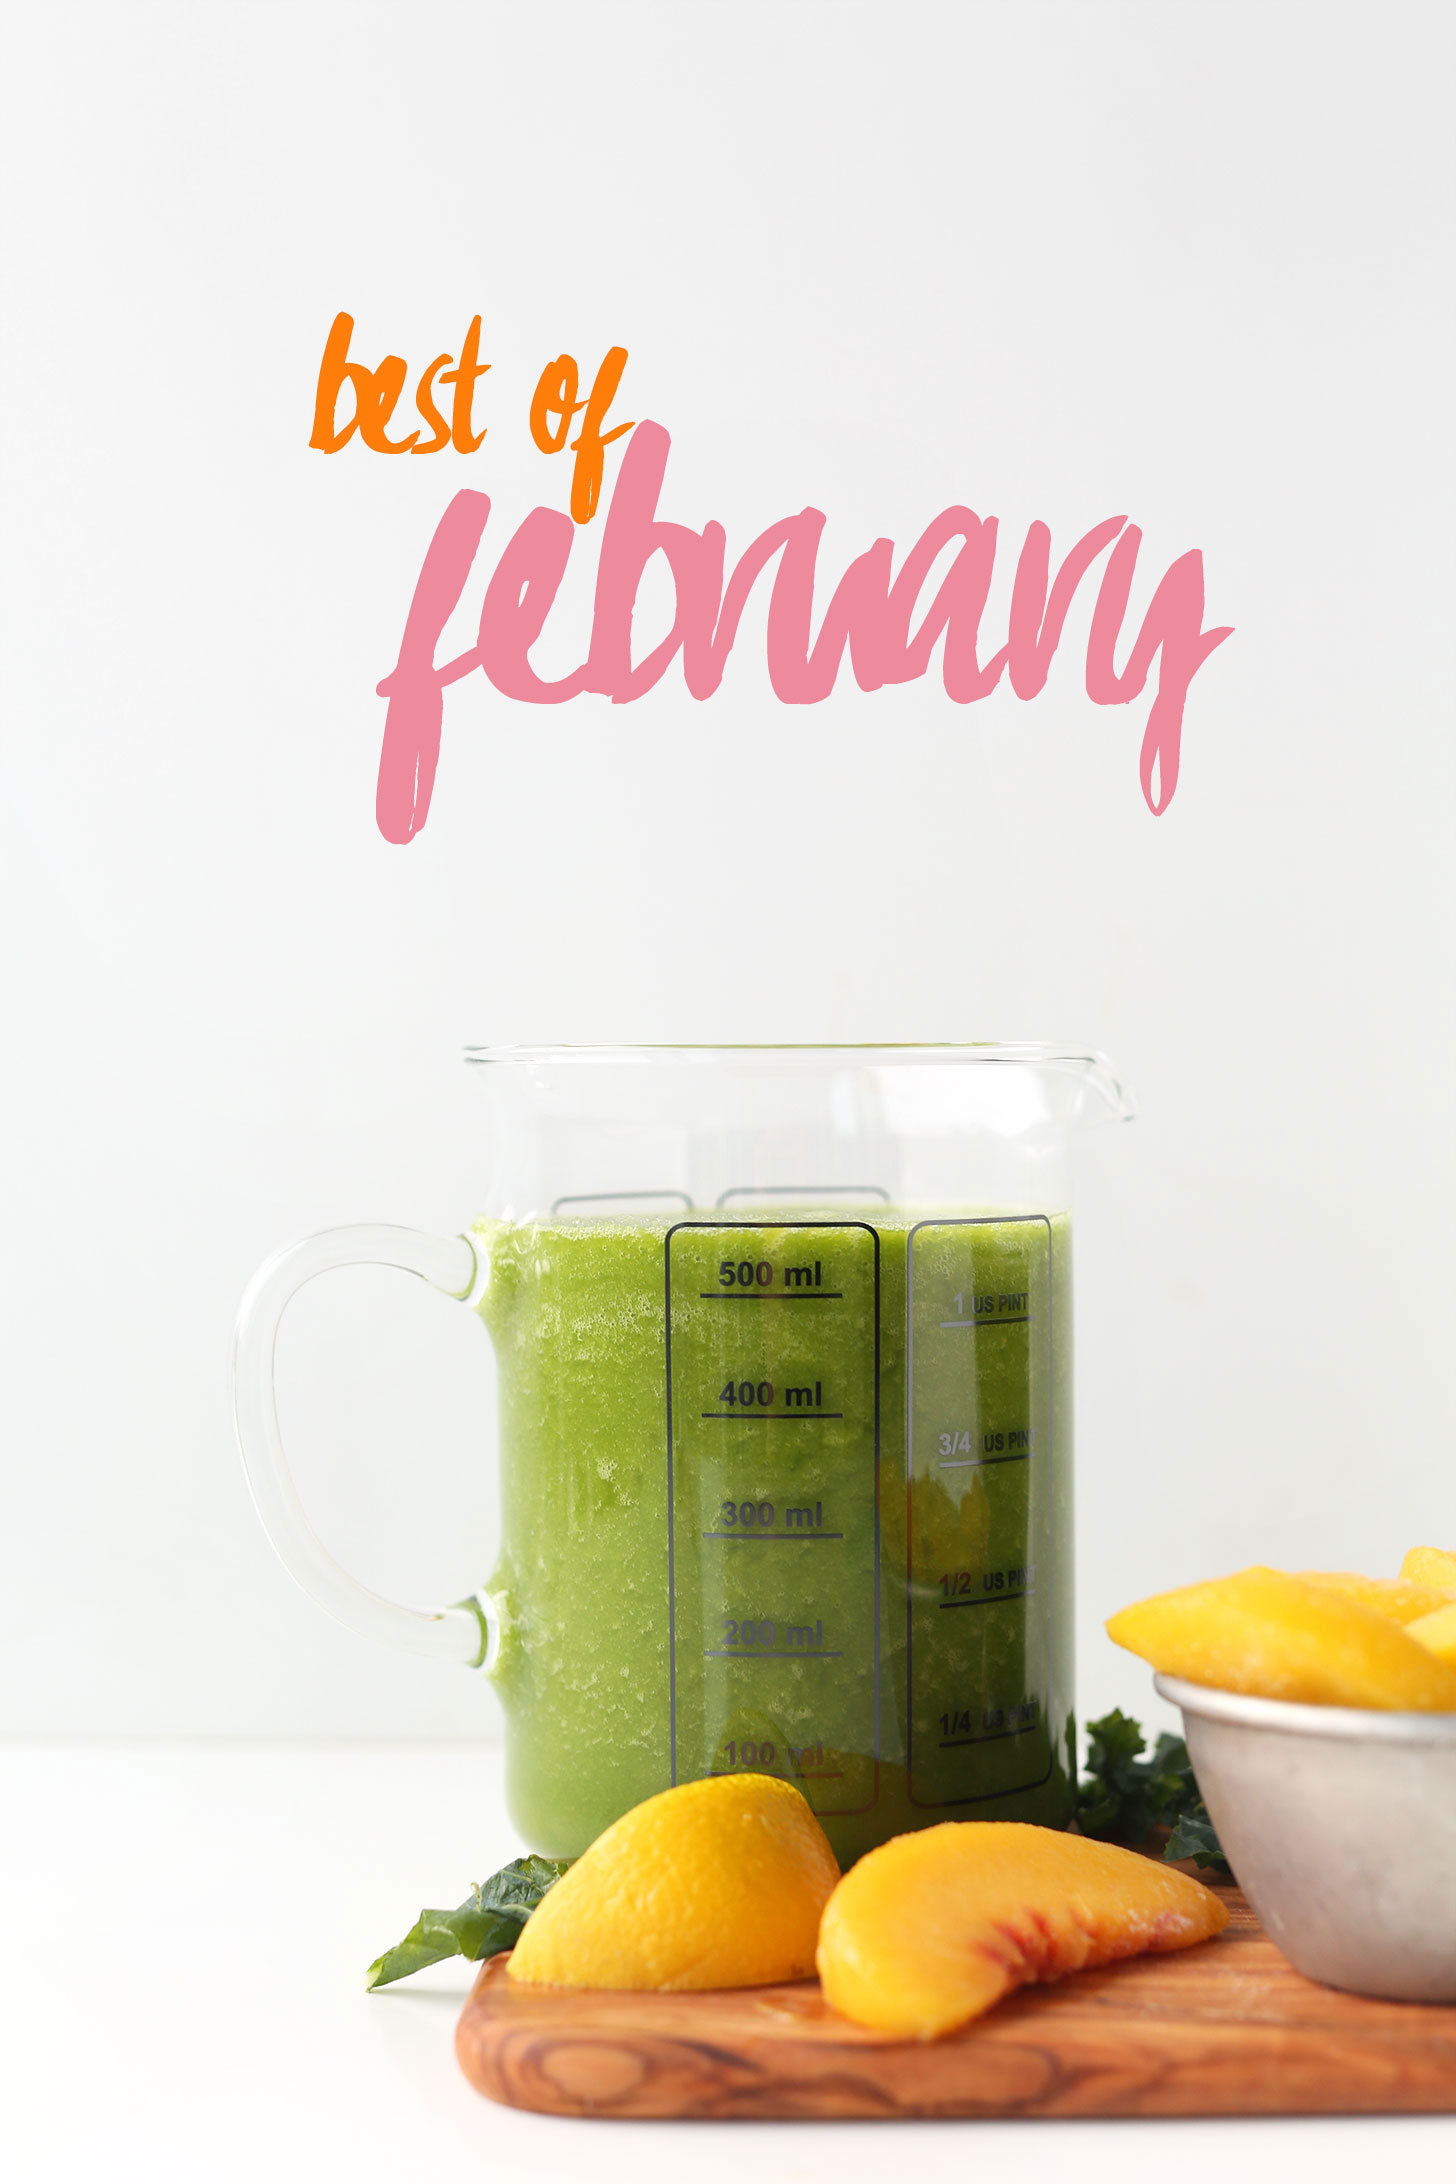 Measuring glass filled with a green smoothie for our Best of February post